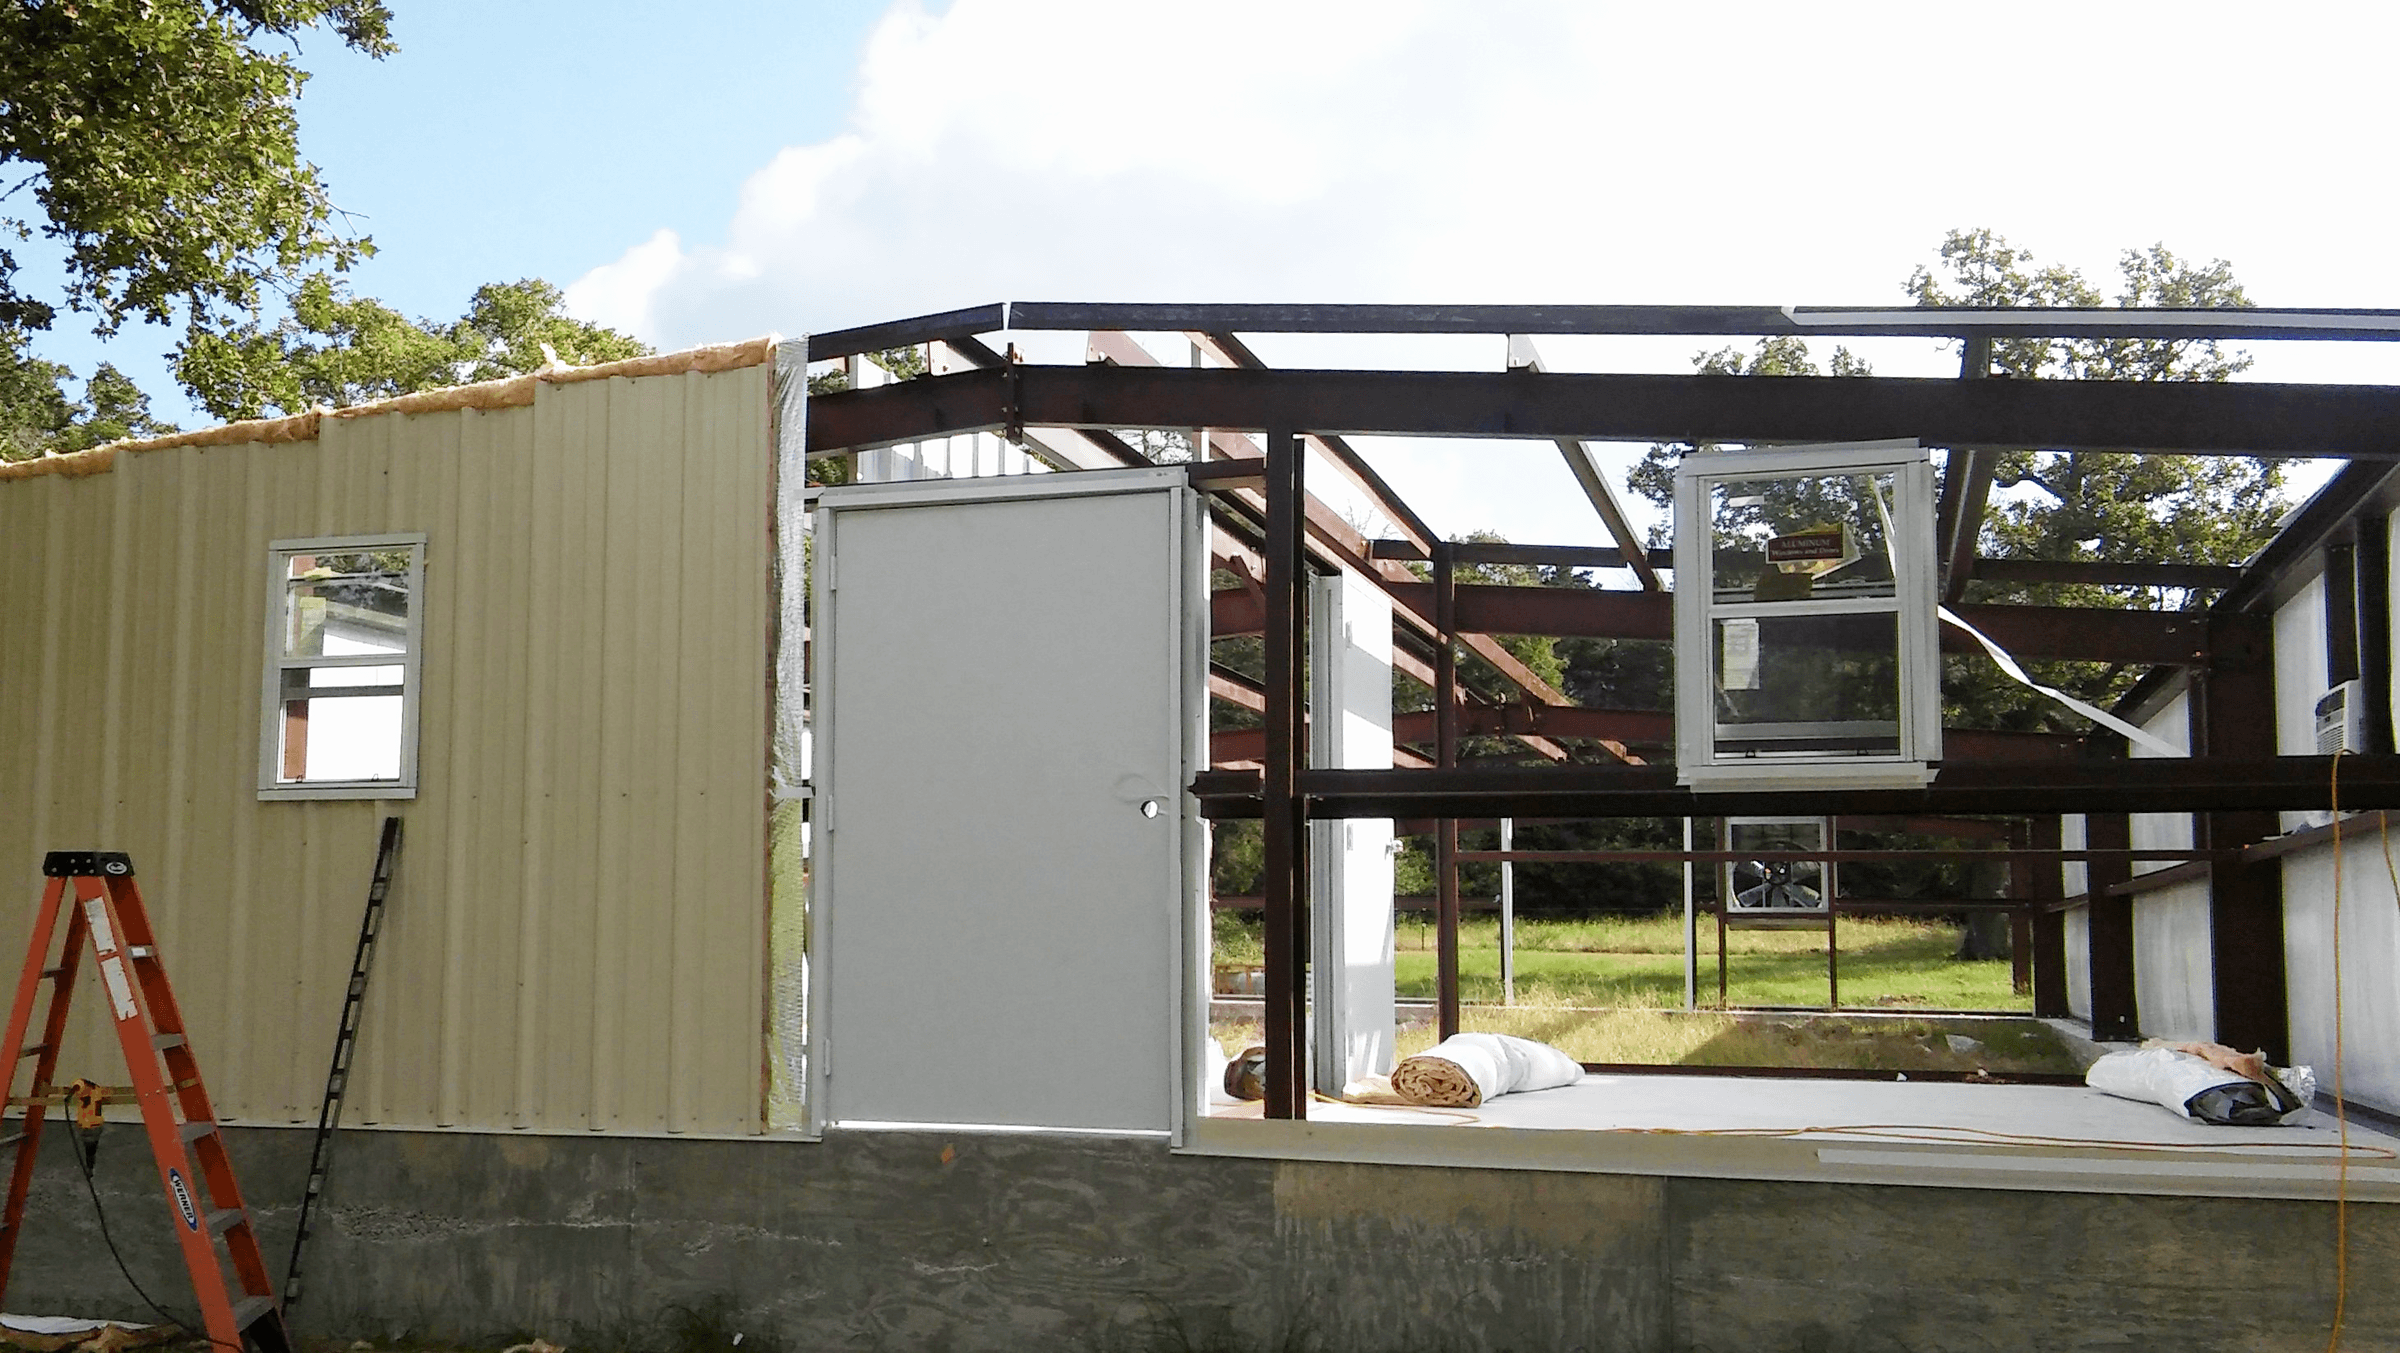 Some of the insulation and metal walls are up.